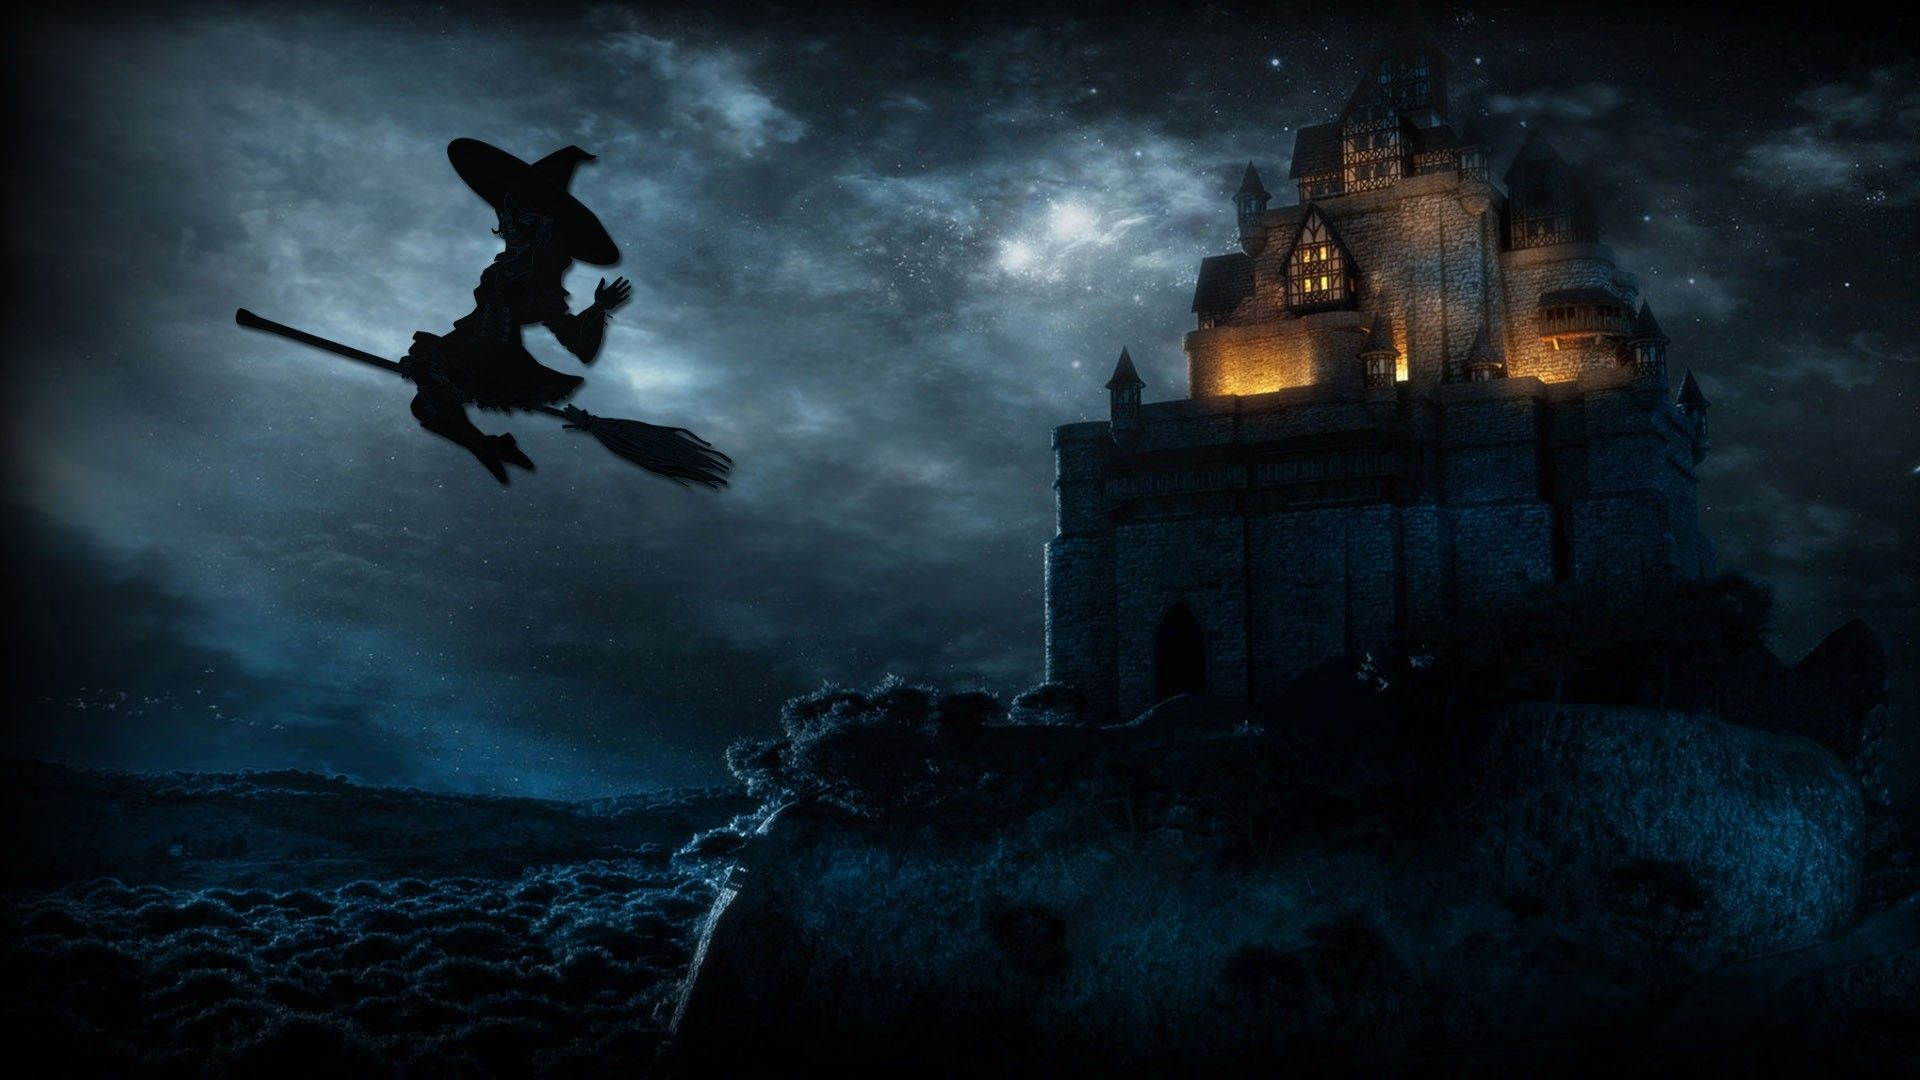 Halloween Witch Wallpapers - Top Free Halloween Witch ...